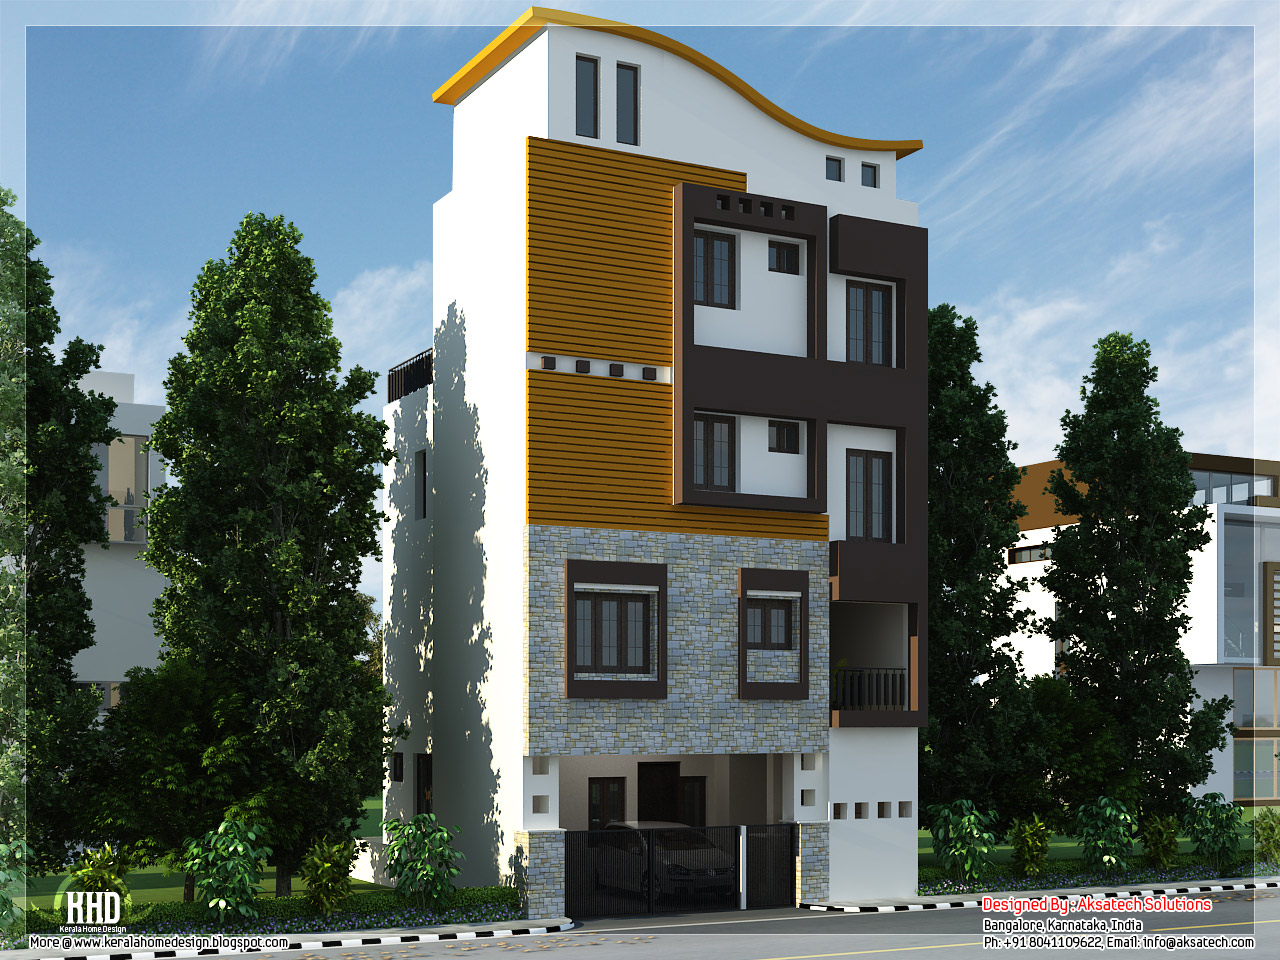 house elevations and interior visualization by aksatech solutions ...